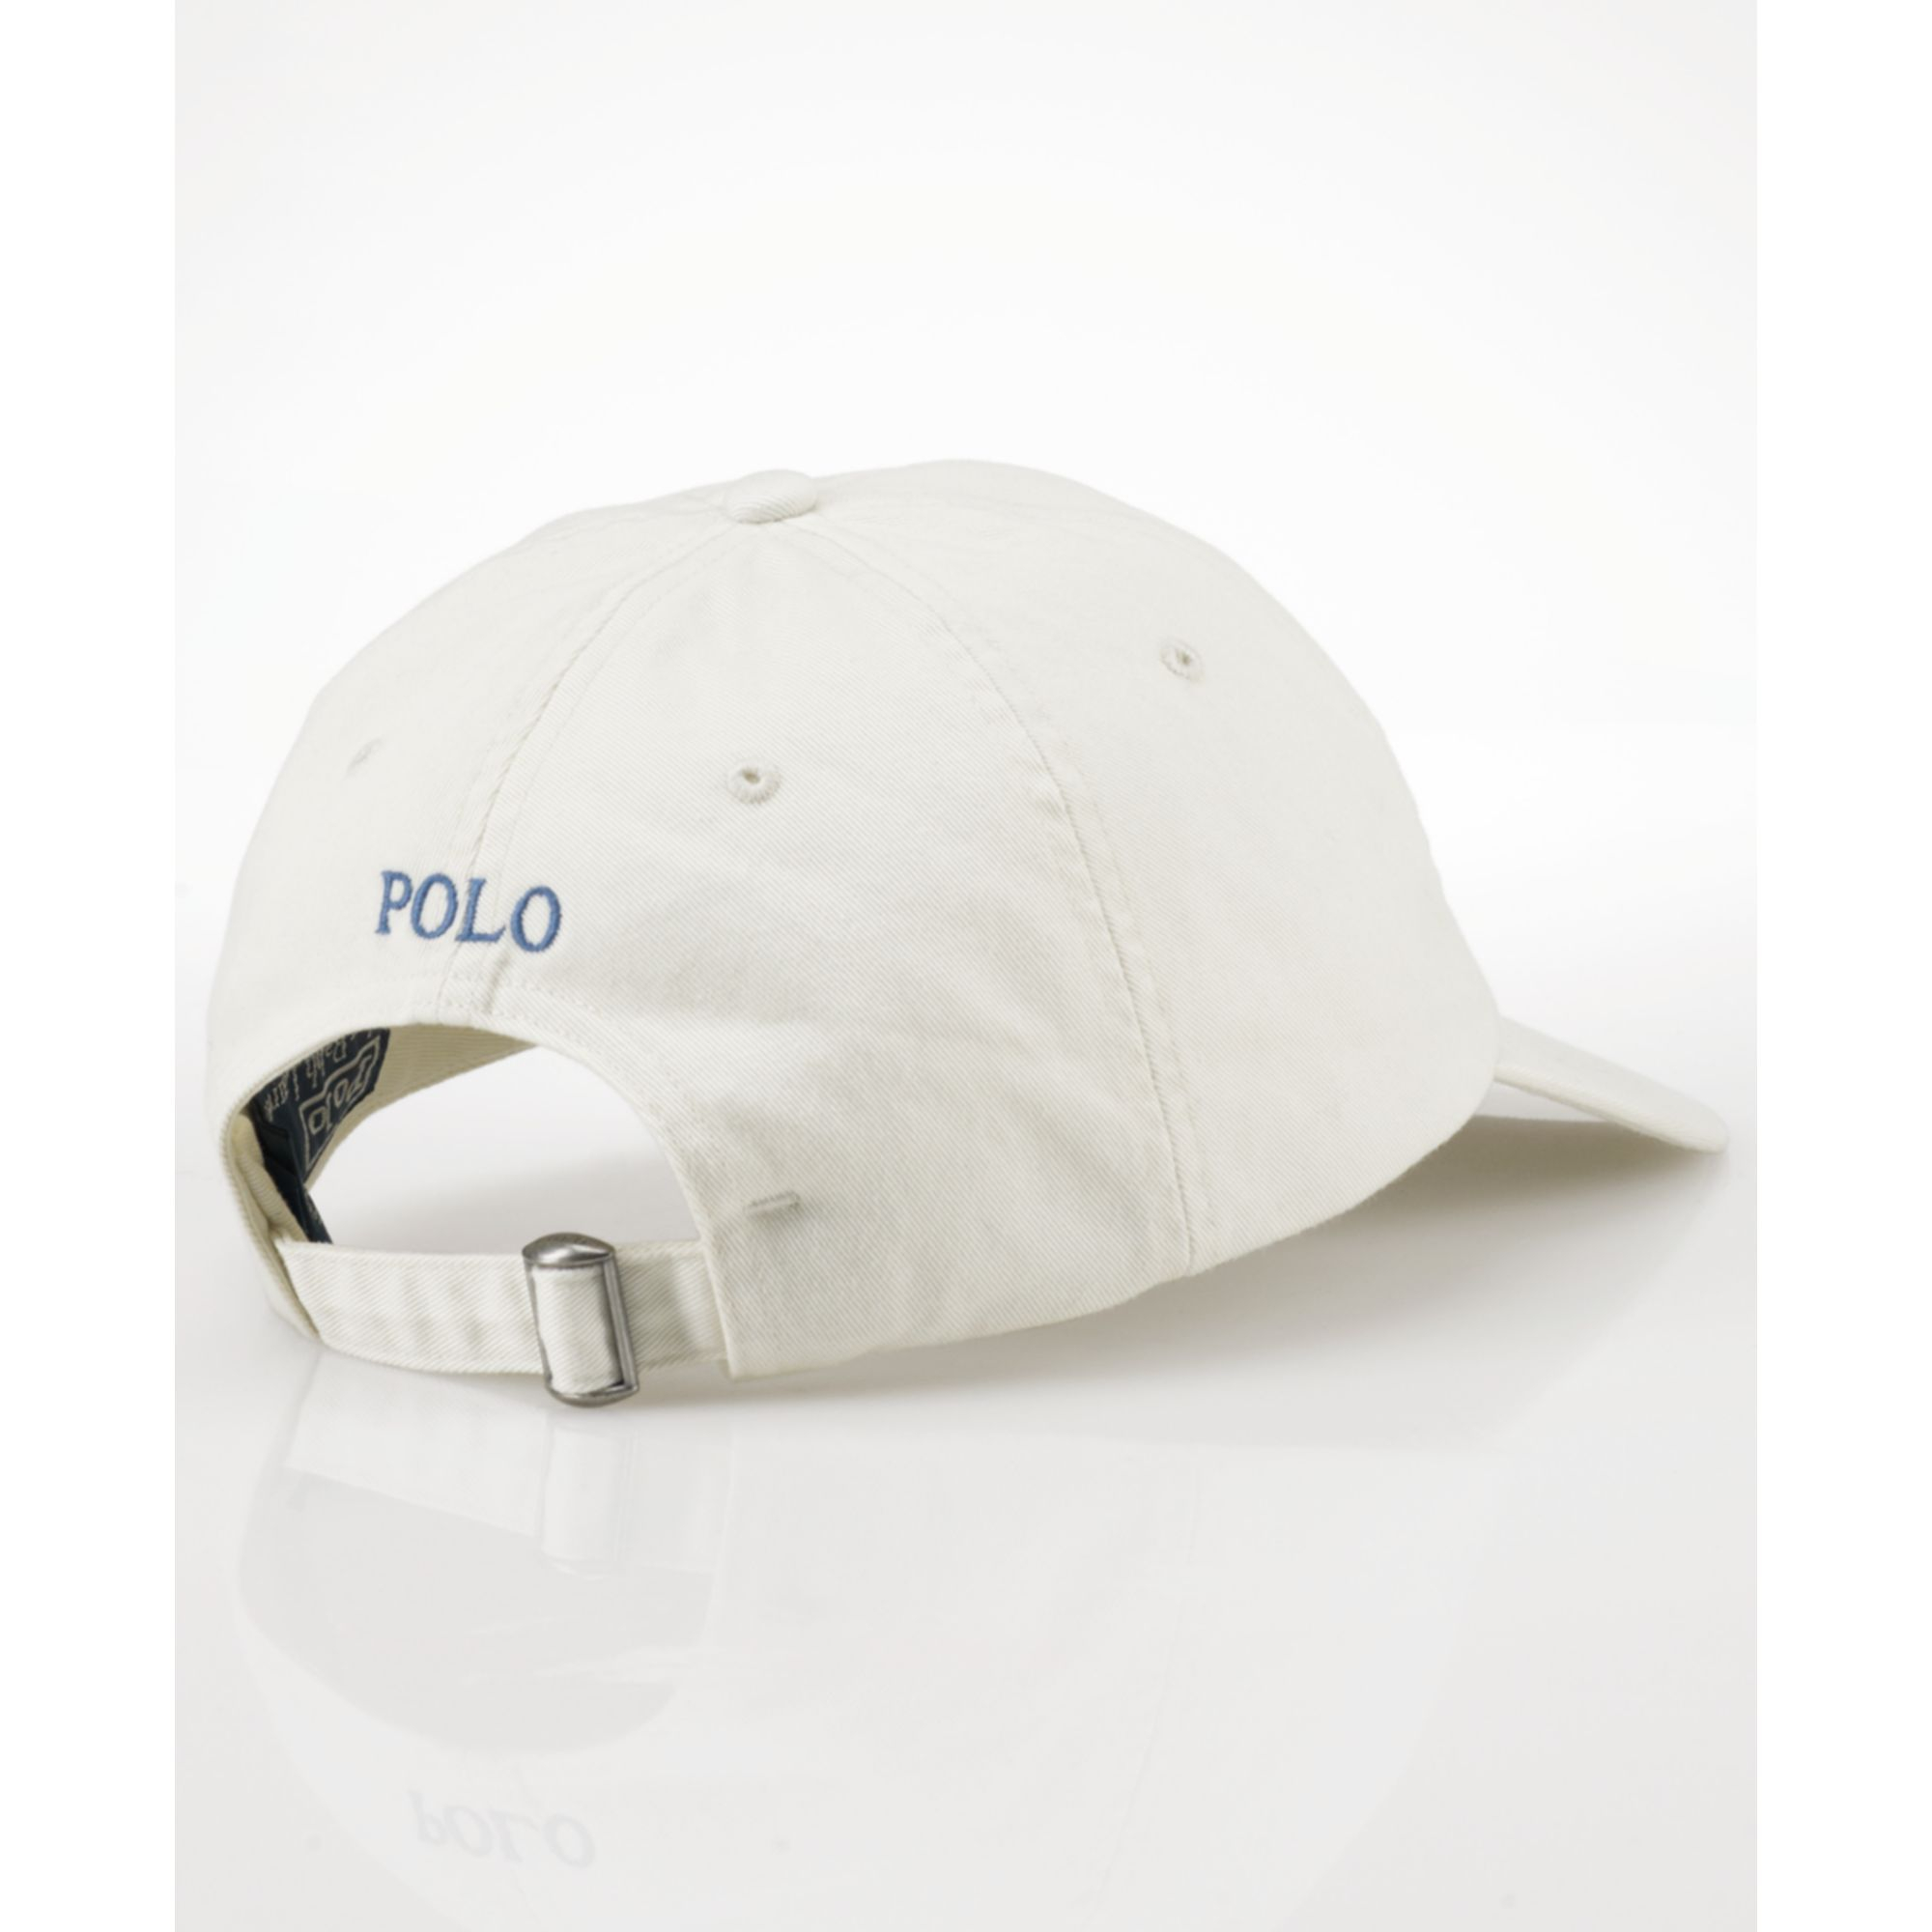 ralph lauren classic chino sports cap in white for men lyst. Black Bedroom Furniture Sets. Home Design Ideas